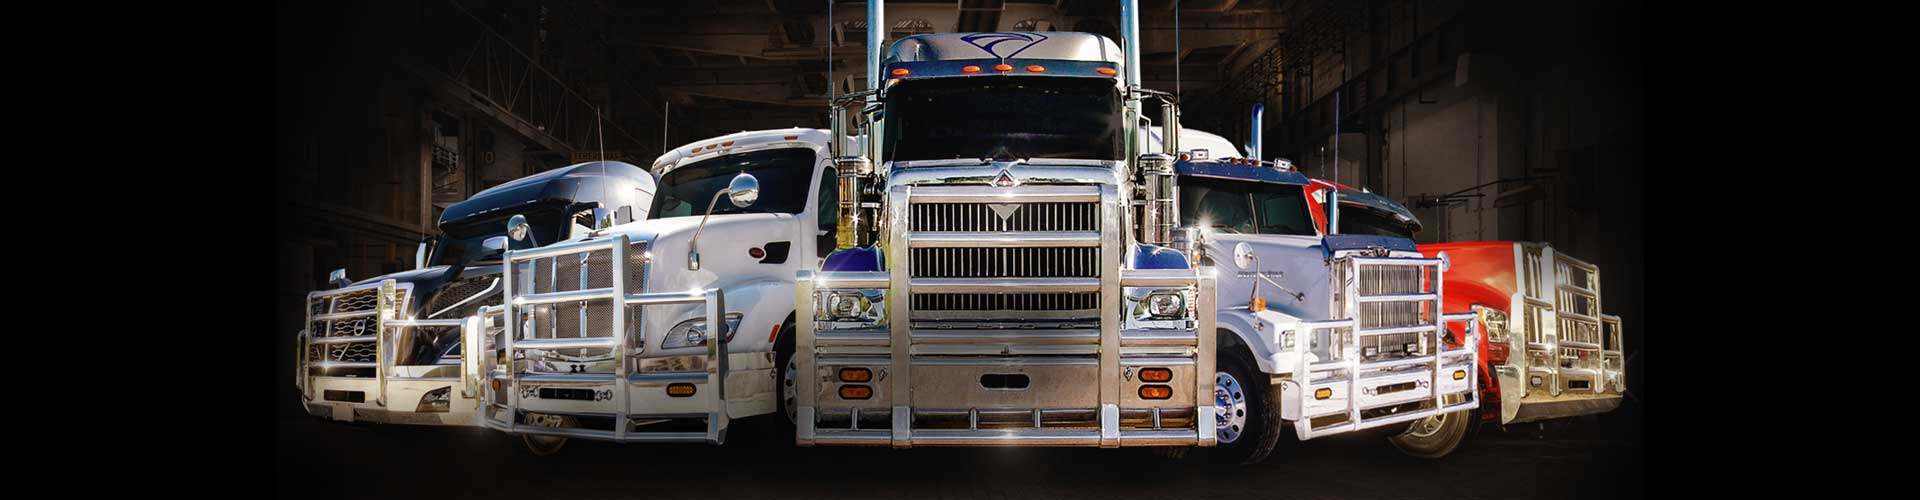 five semi trucks of varying manufactures with herd truck guards